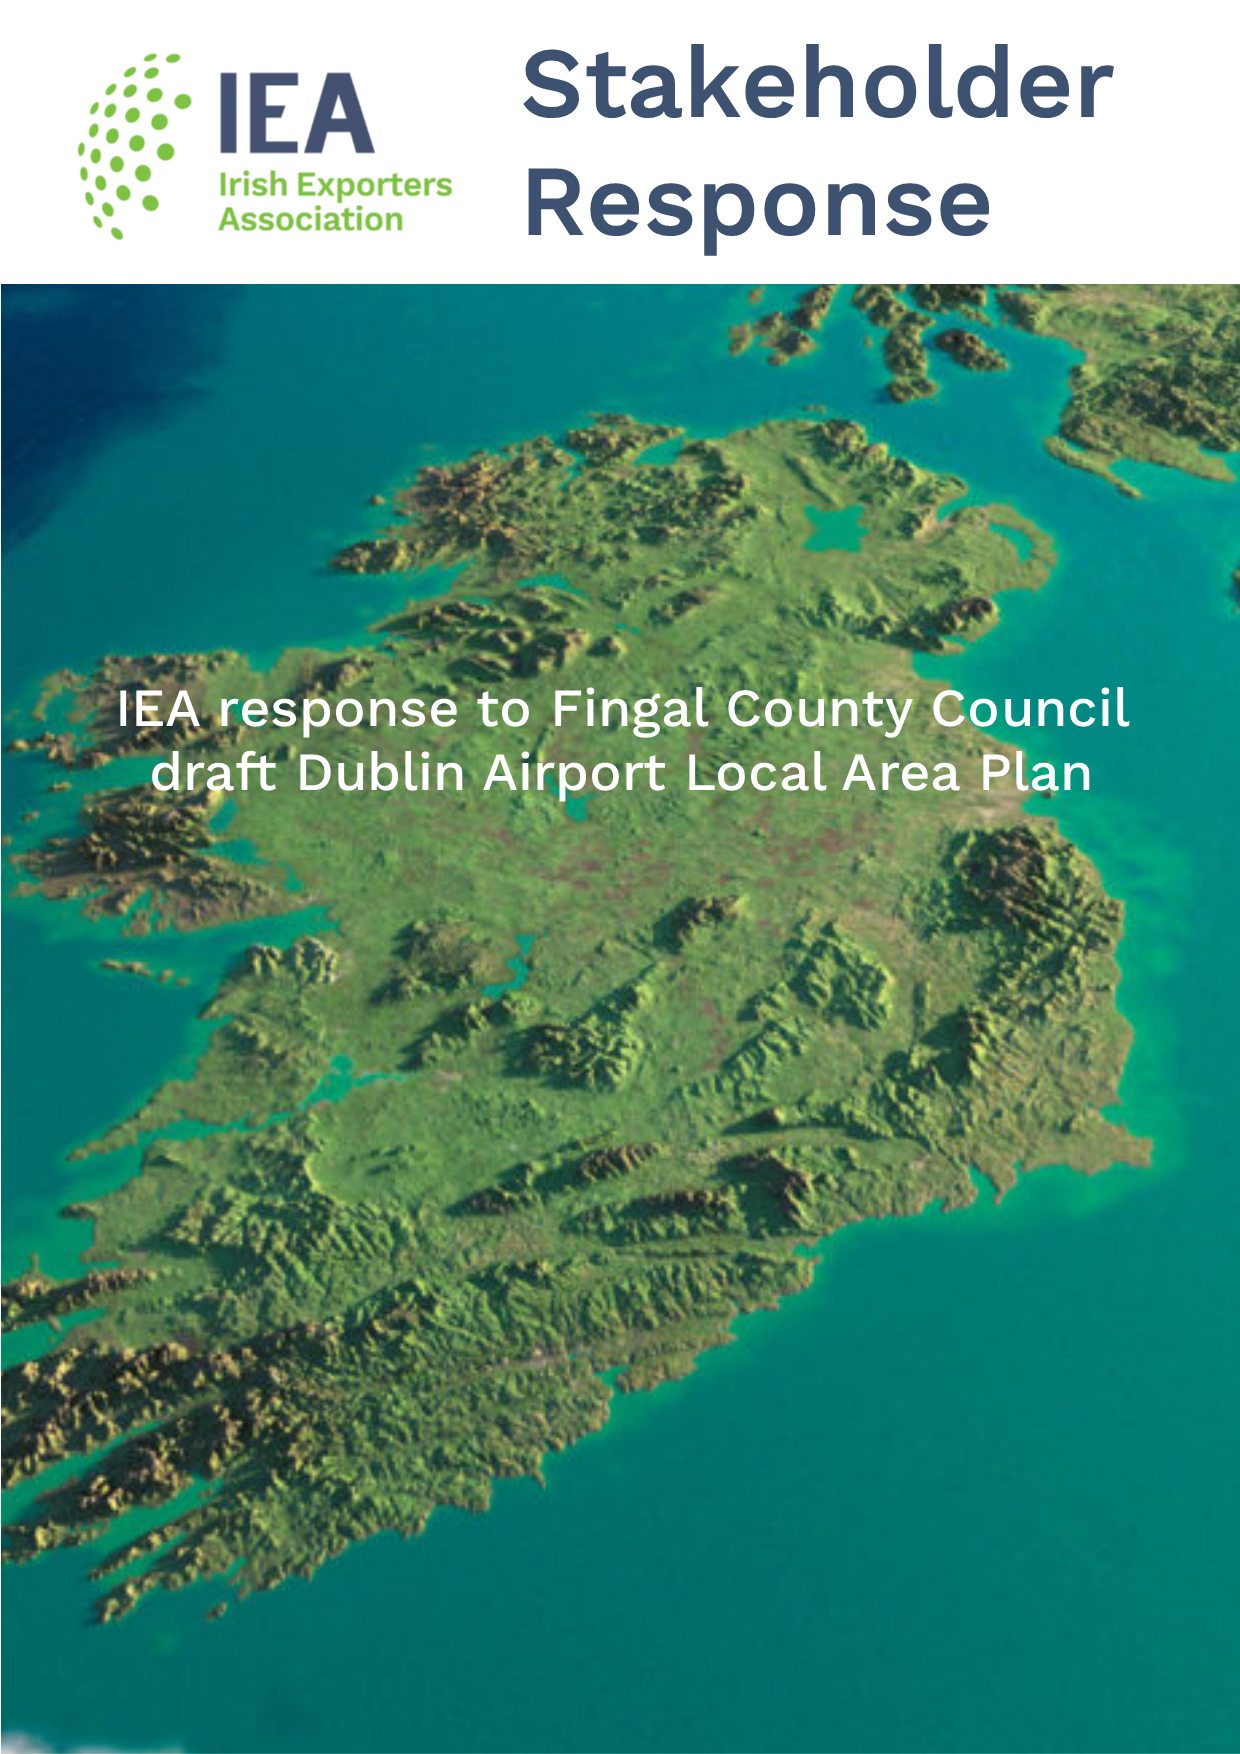 IEA response to Fingal County Council draft Dublin Airport Local Area Plan